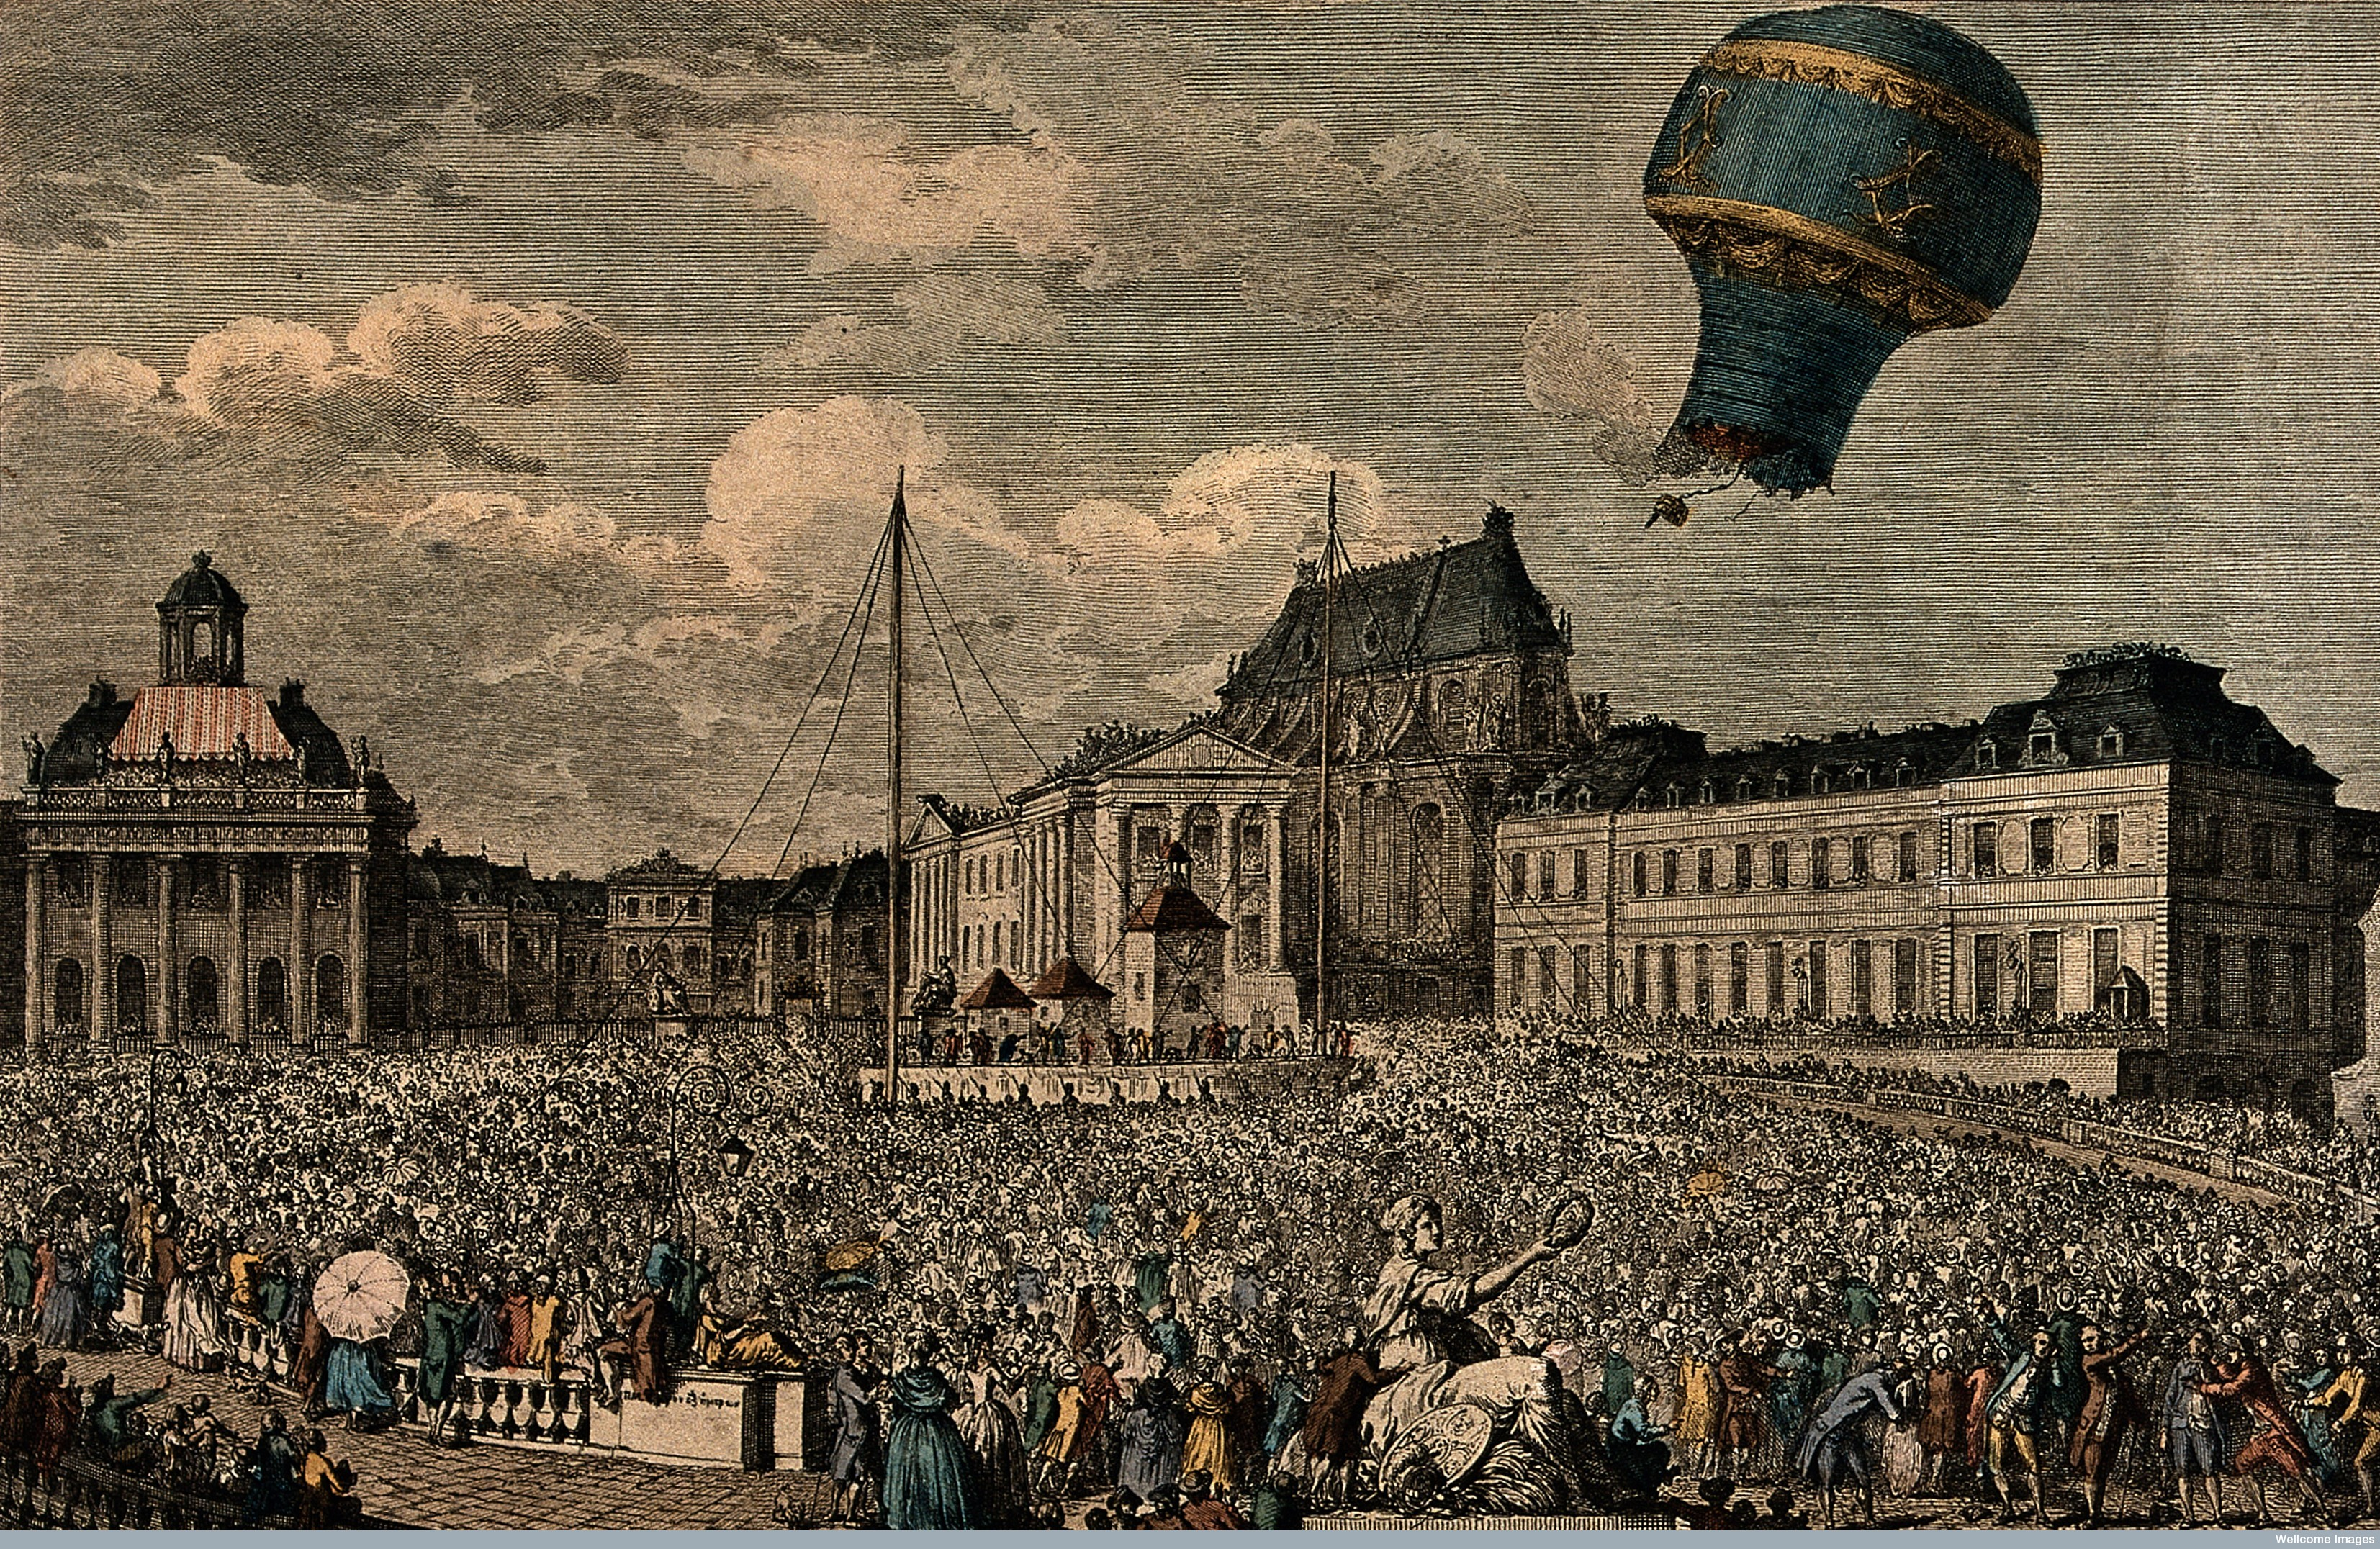 V0040878 A huge crowd watches from the streets as a hot-air balloon t